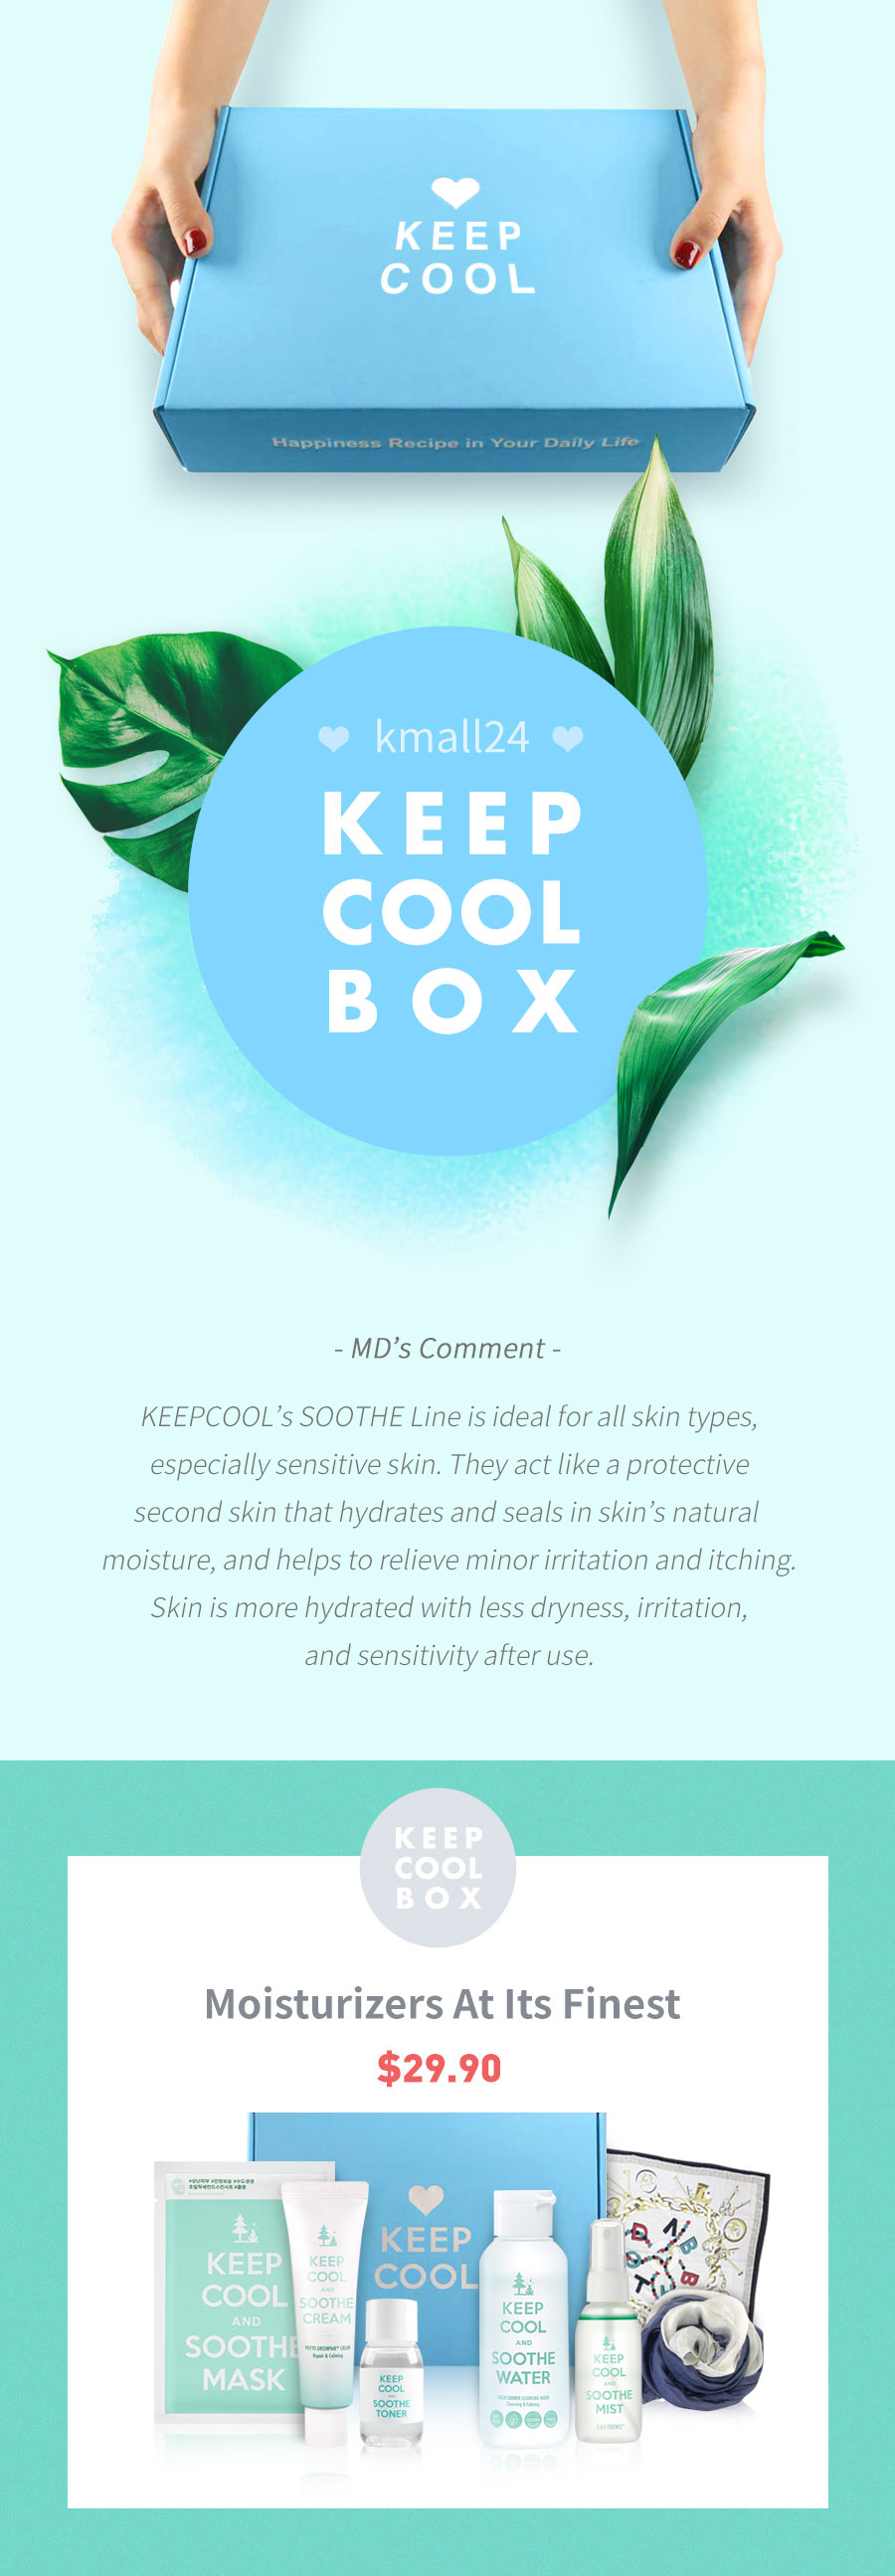 [KEEPCOOL BOX] Moisturizers At Its Finest